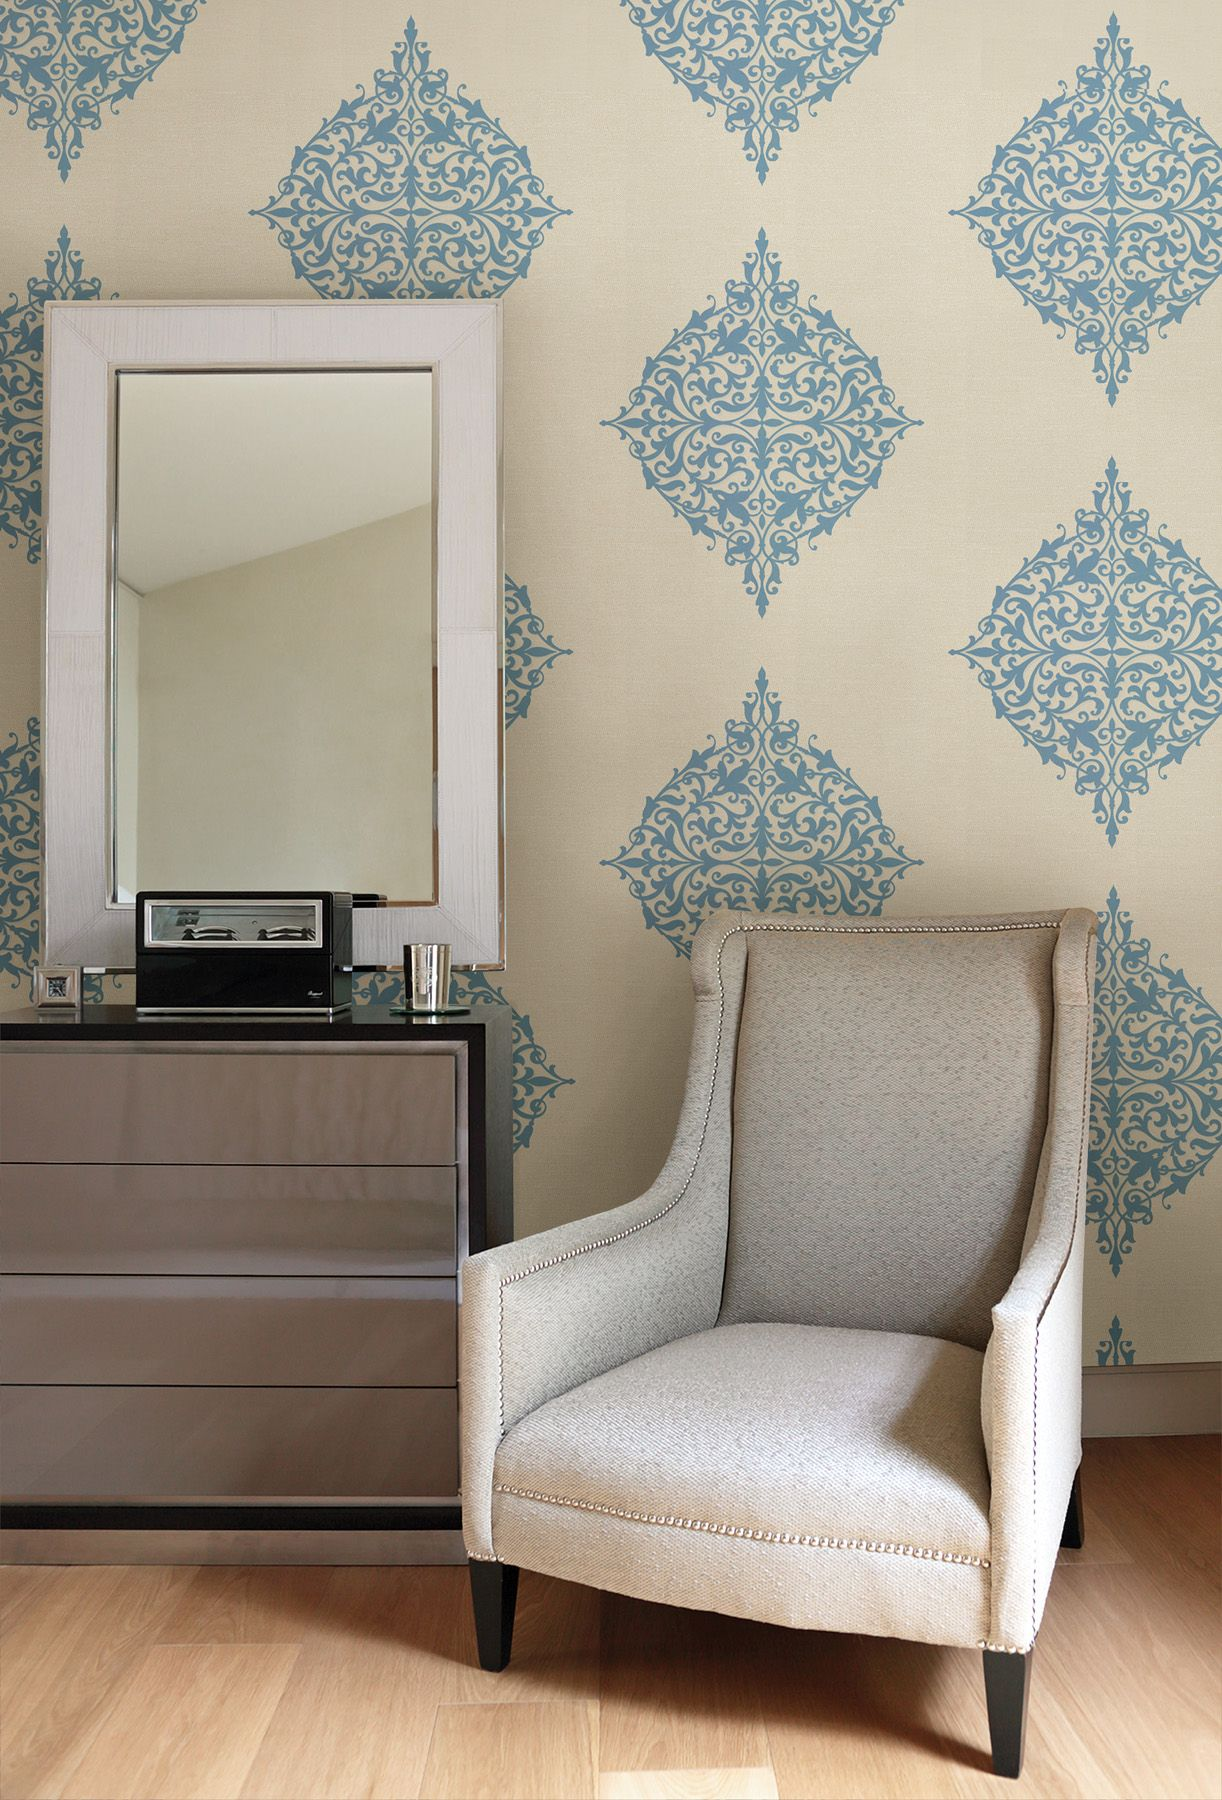 Funky Living Room Wallpaper Paint Colors For 2017 Turquoise Feature Wall With Modern Medallion Decor Idea